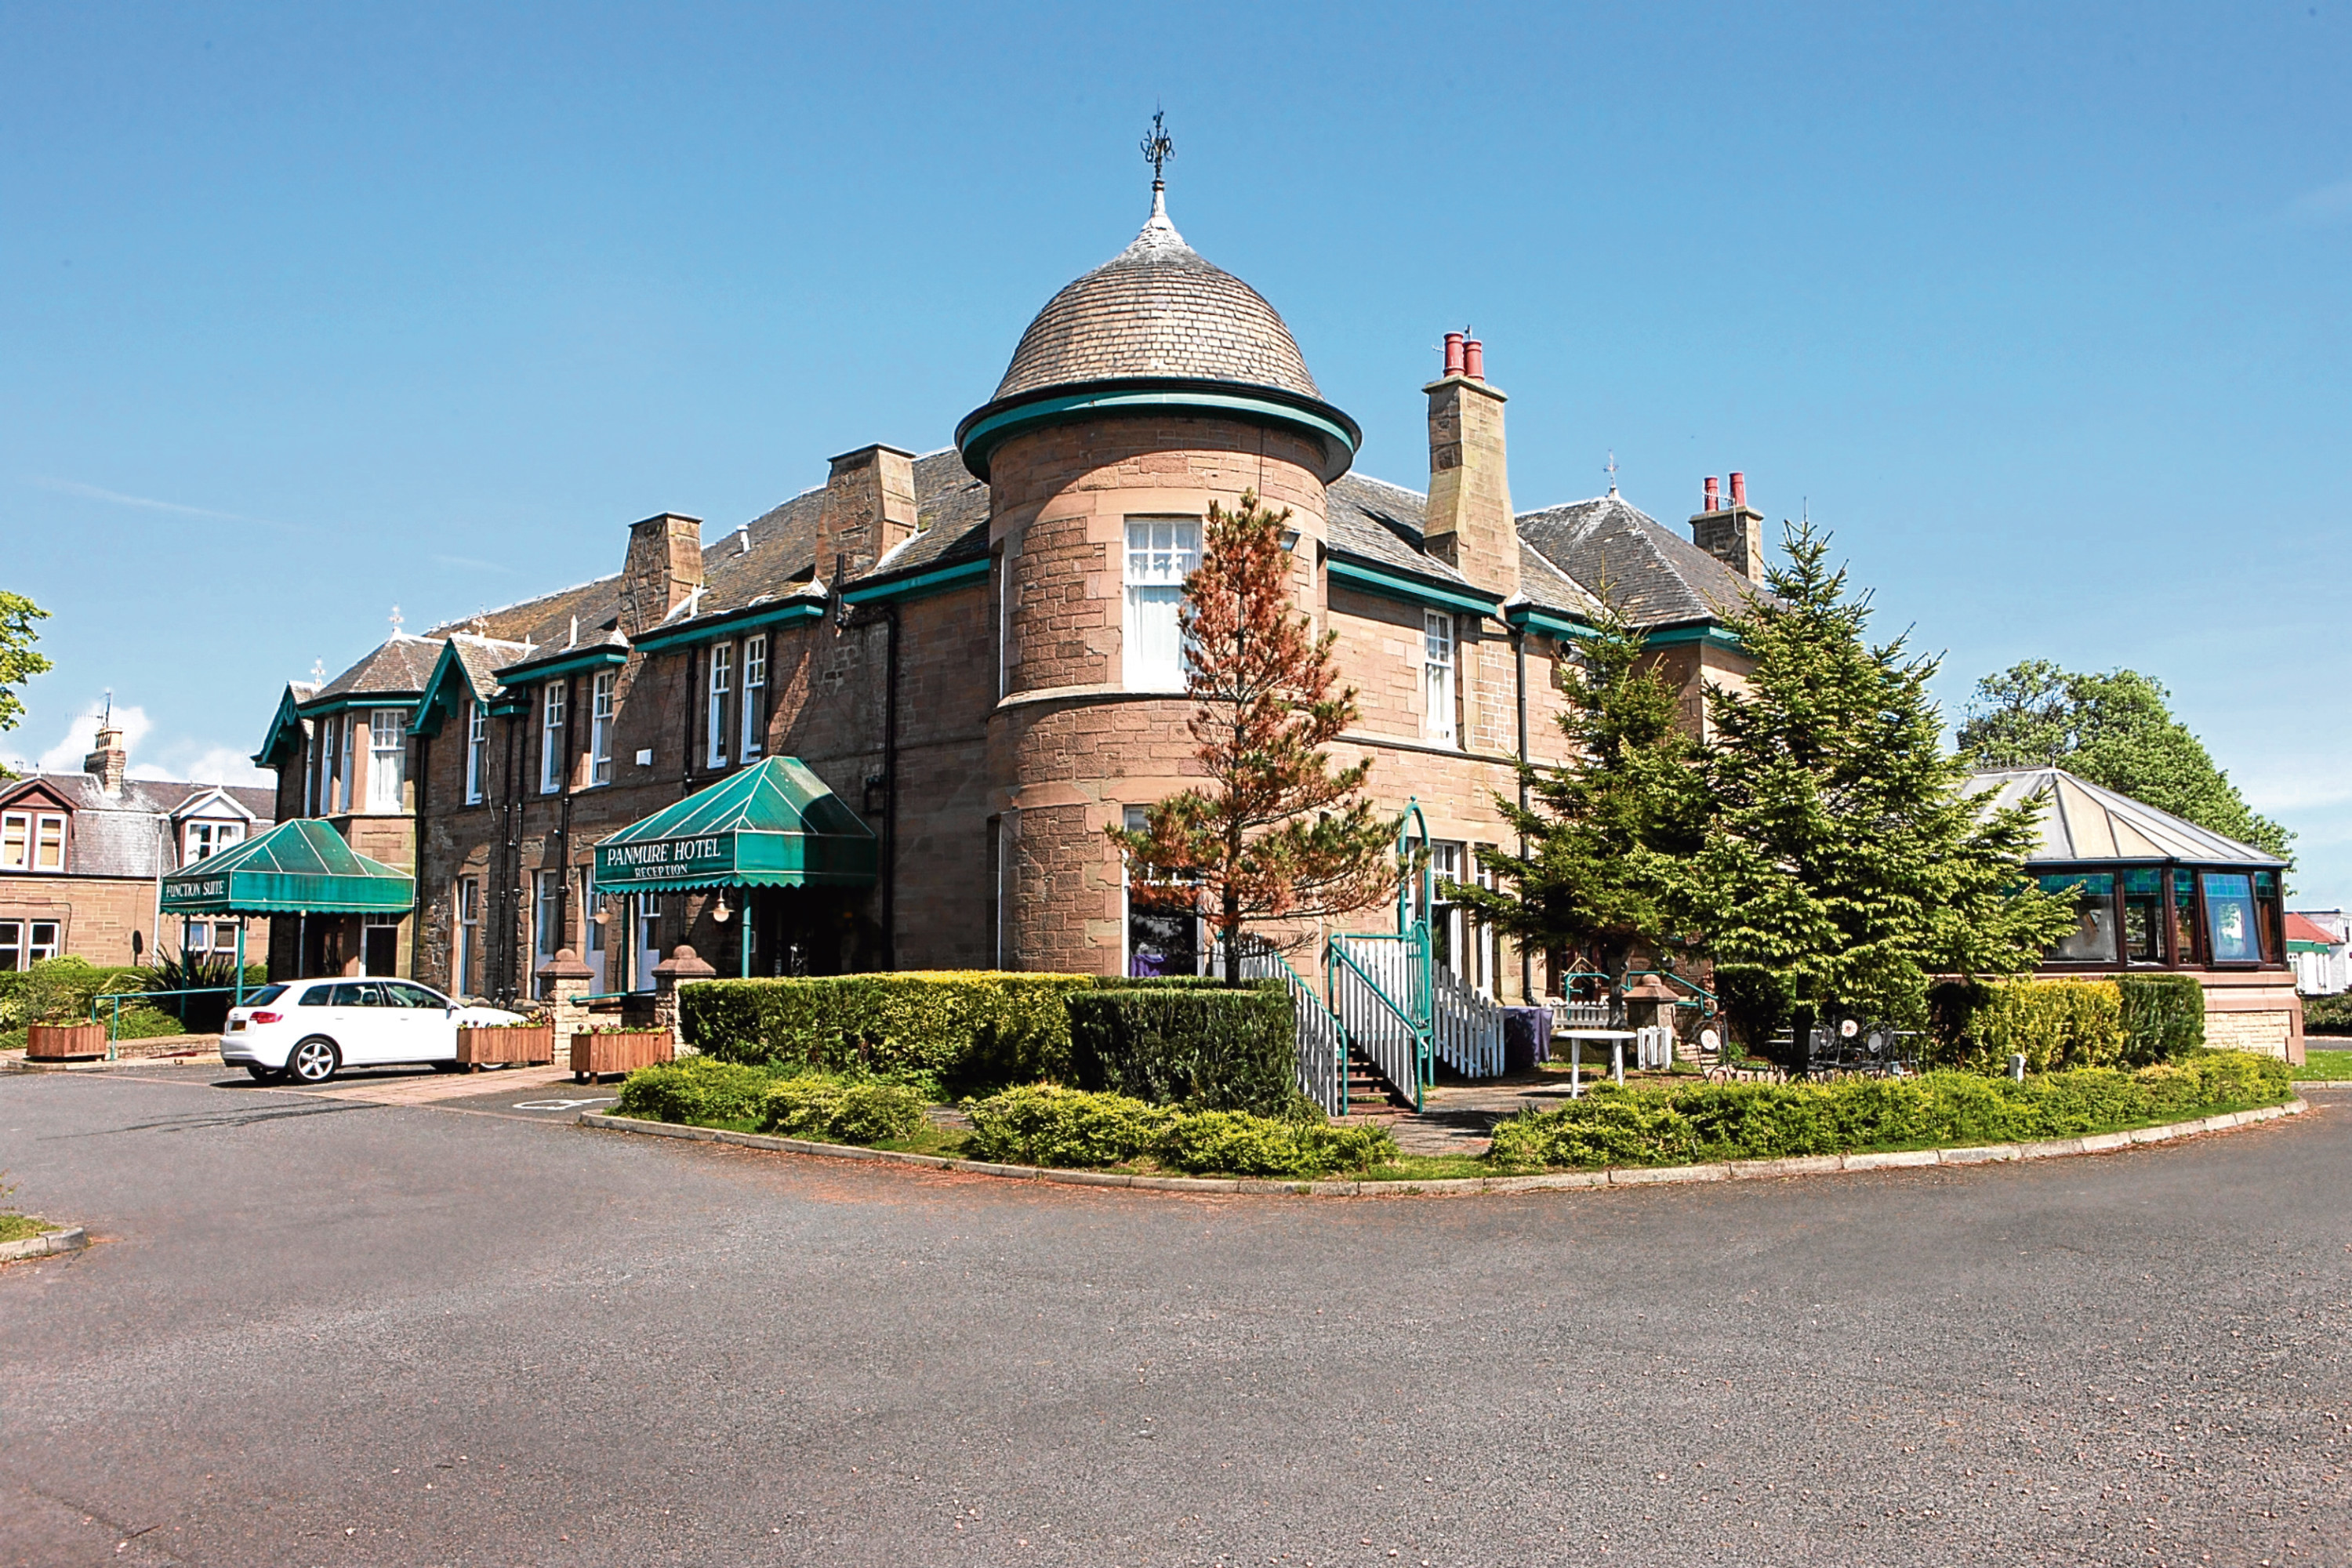 The Panmure Hotel